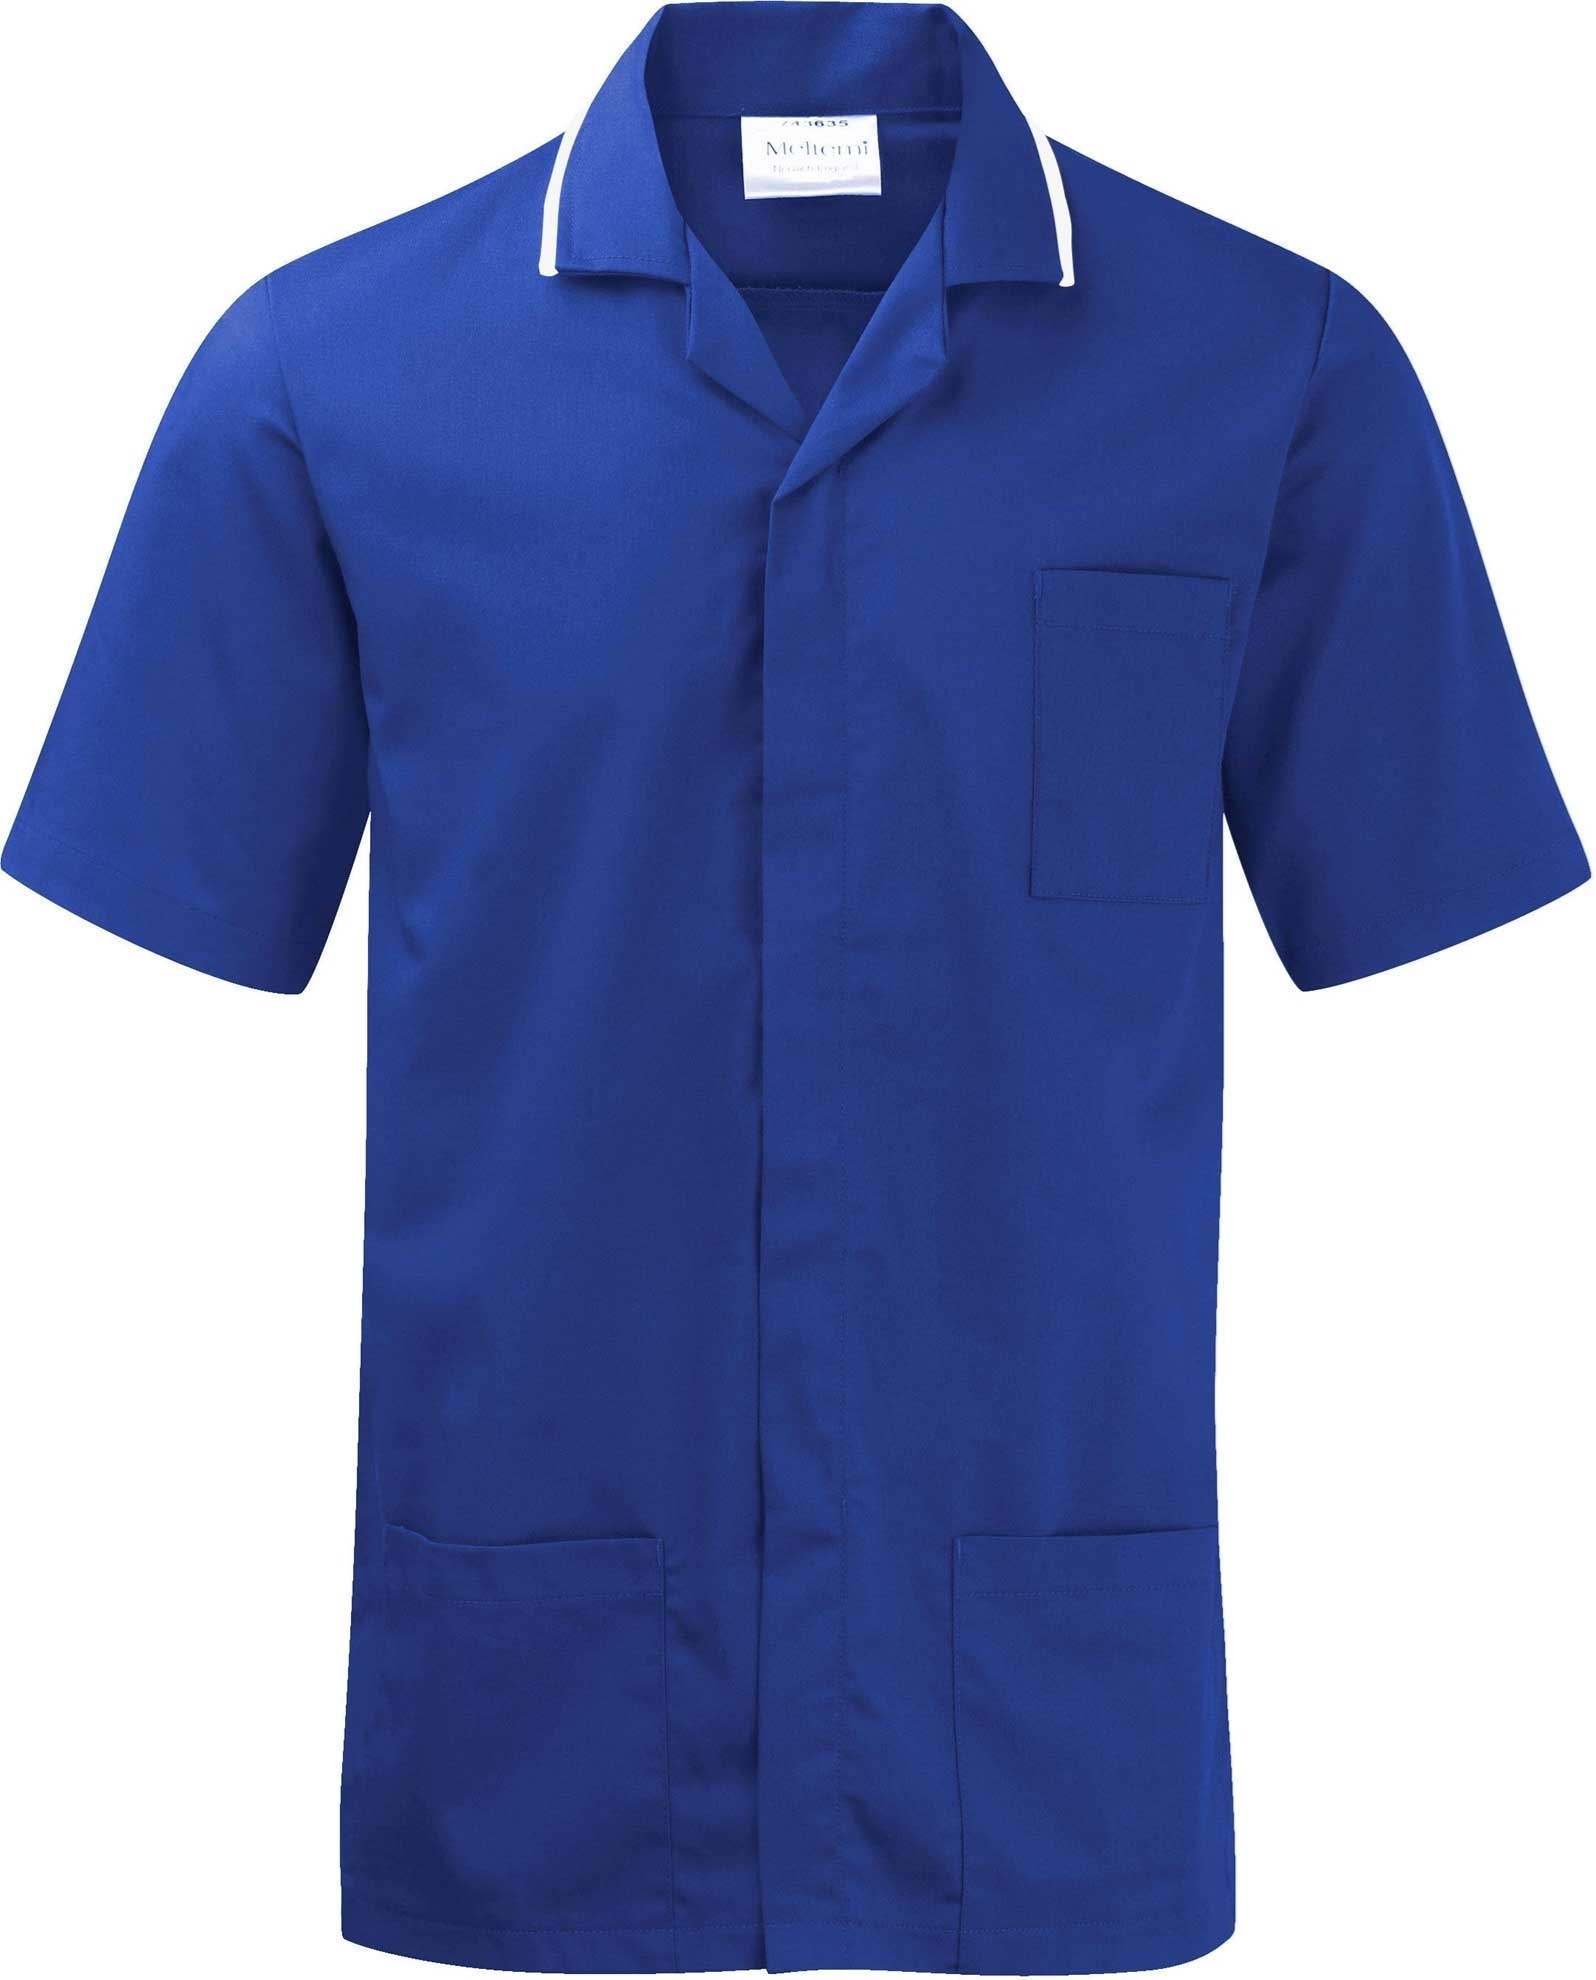 Picture of Advantage Front Fastening Tunic - Royal Blue/White